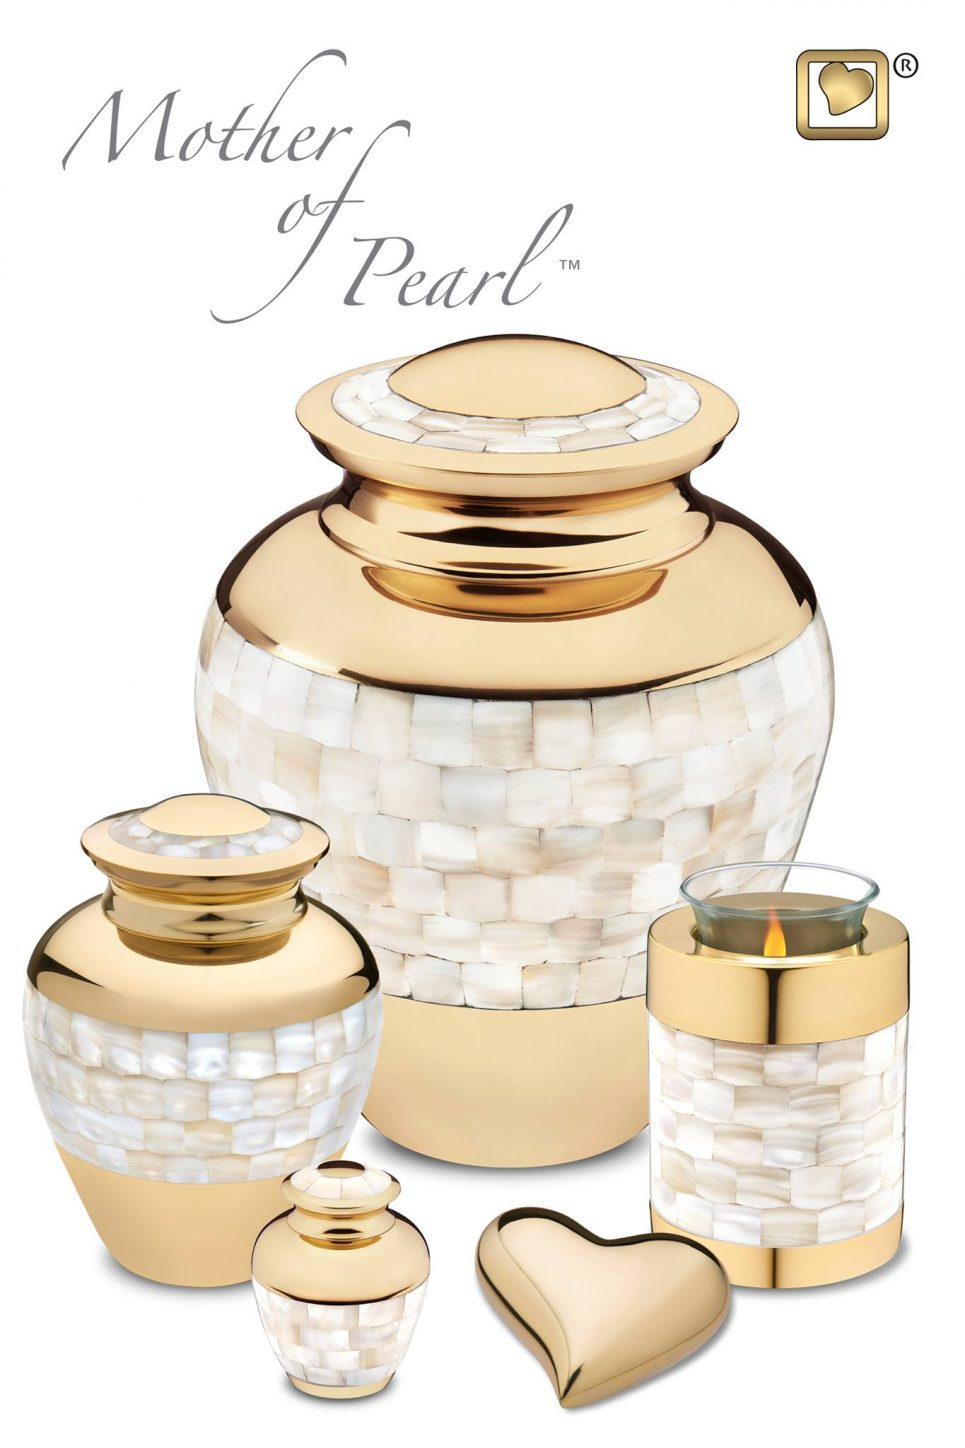 Always and Forever Memorial Products: Mother of Pearl Memorial Collection